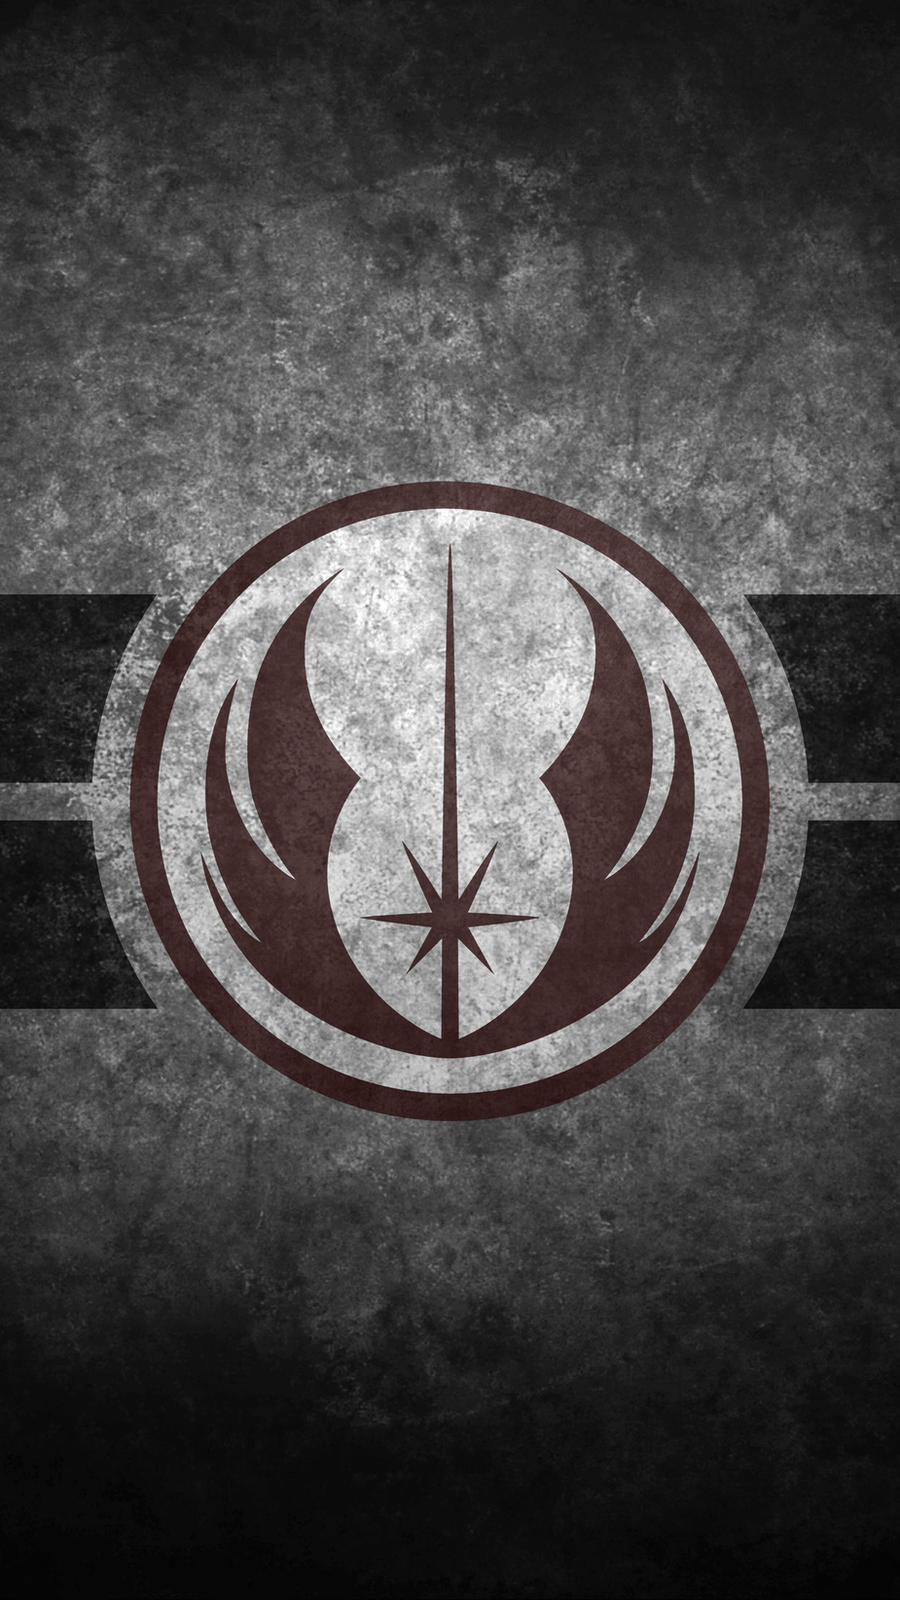 Jedi Order Symbol Cellphone Wallpaper by swmand4